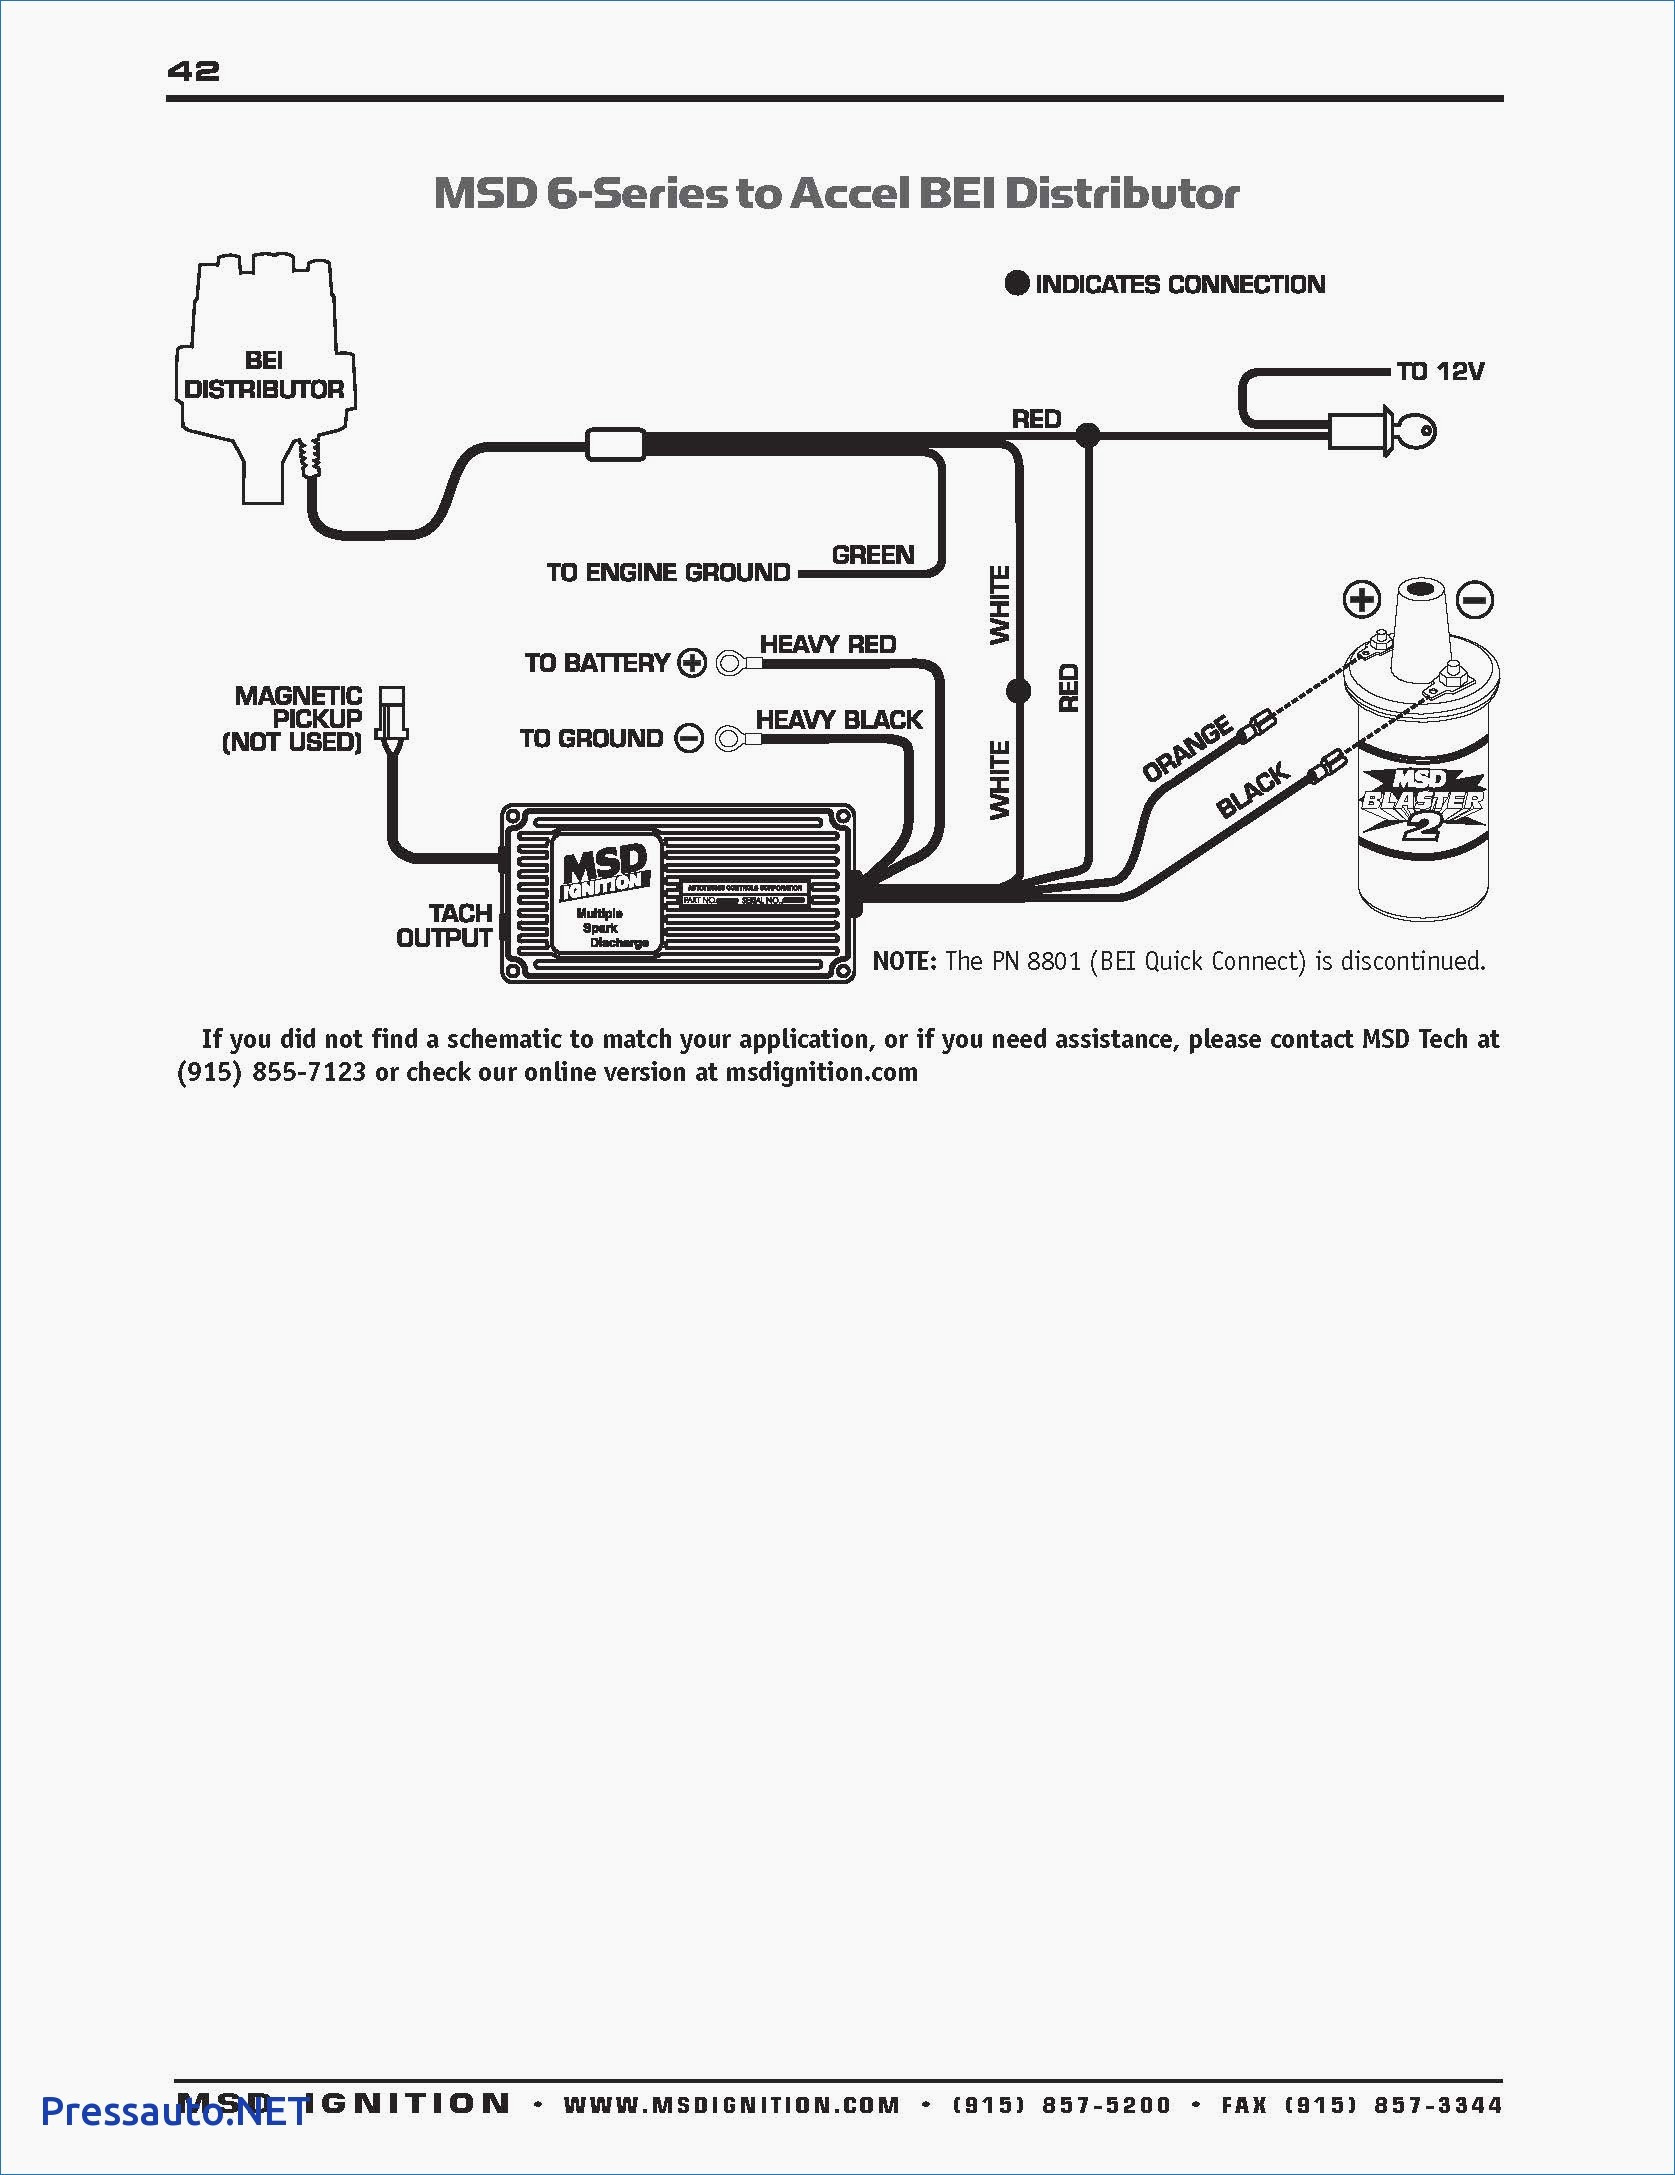 Distributor Wiring Diagram : distributor, wiring, diagram, Ignition, Wiring, Diagram